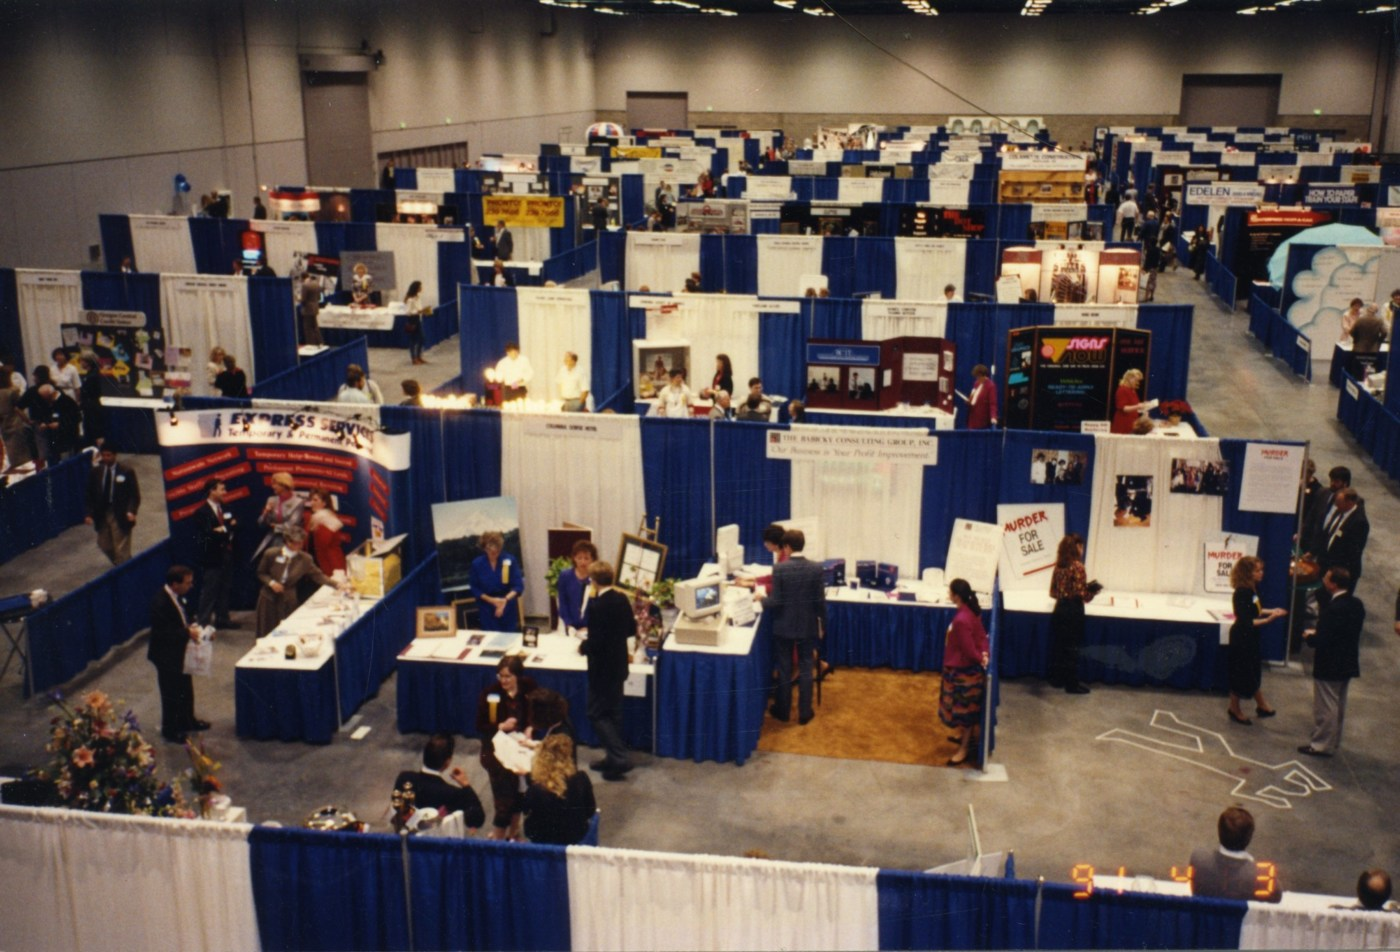 Exhibition Booth Requirements : Are you exhibiting at a trade show or convention center